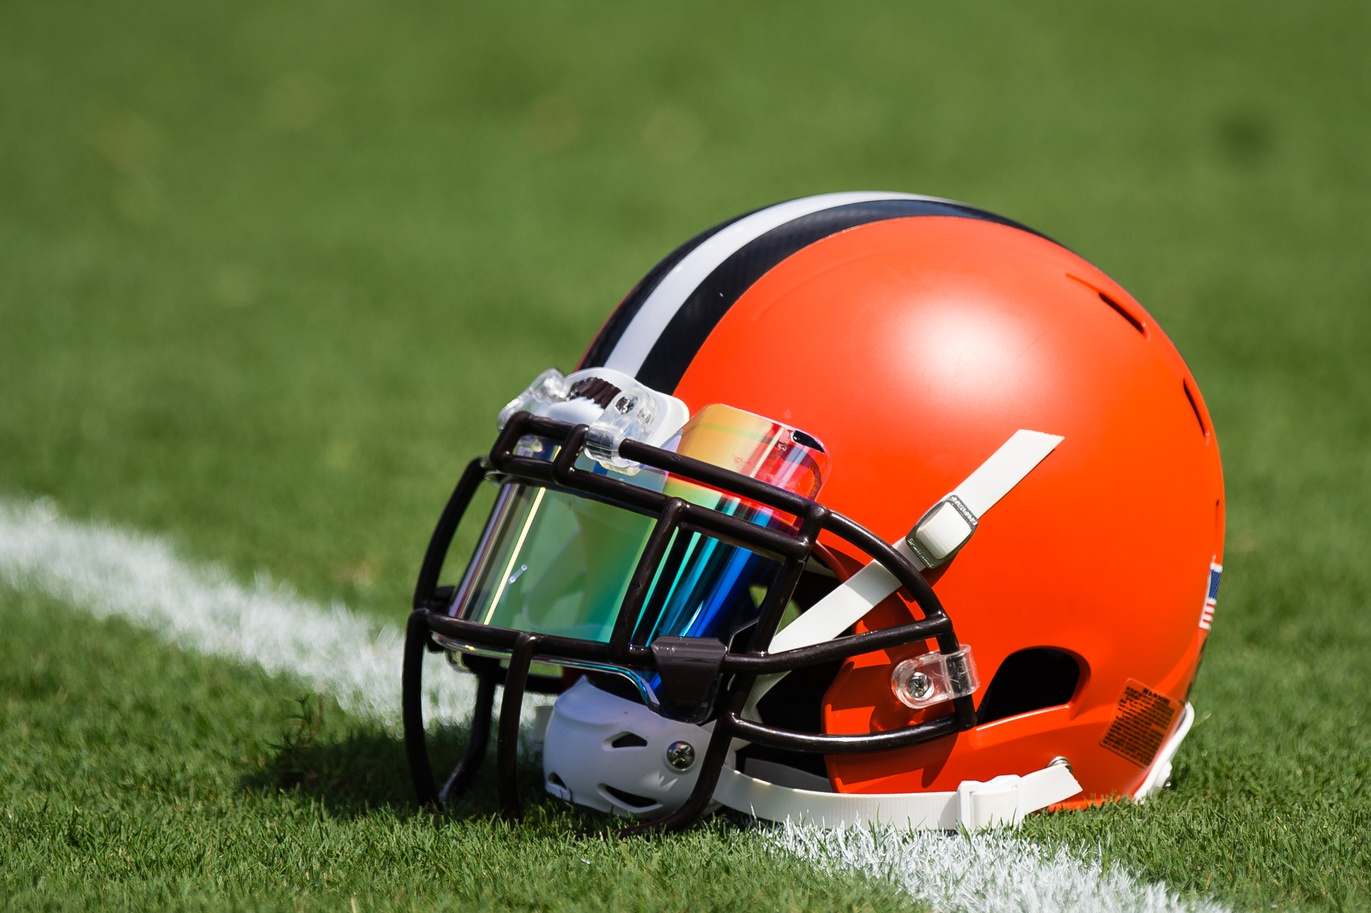 Browns 2019 preseason opponents announced